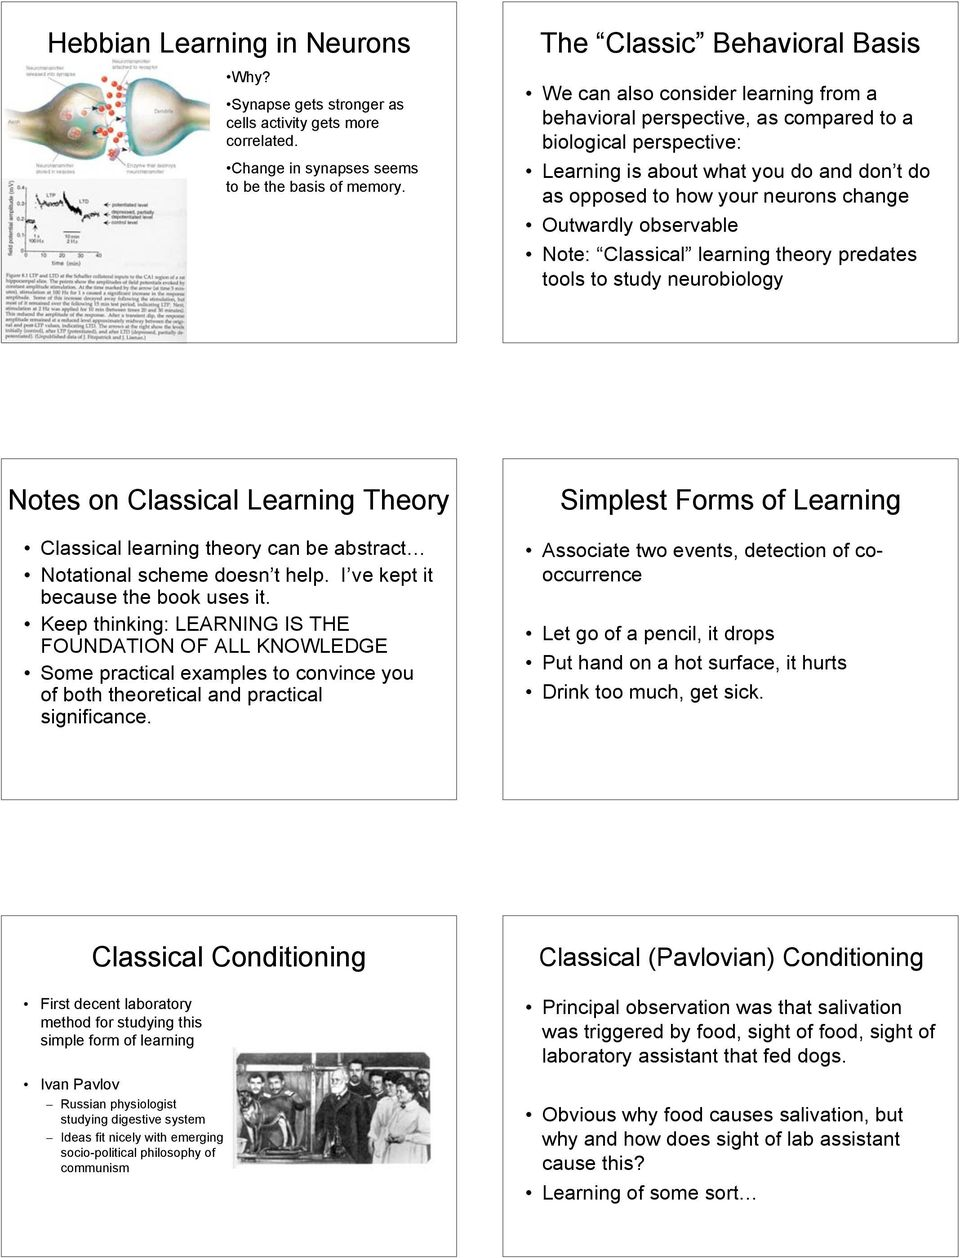 neurons change Outwardly observable Note: Classical learning theory predates tools to study neurobiology Notes on Classical Learning Theory Classical learning theory can be abstract Notational scheme